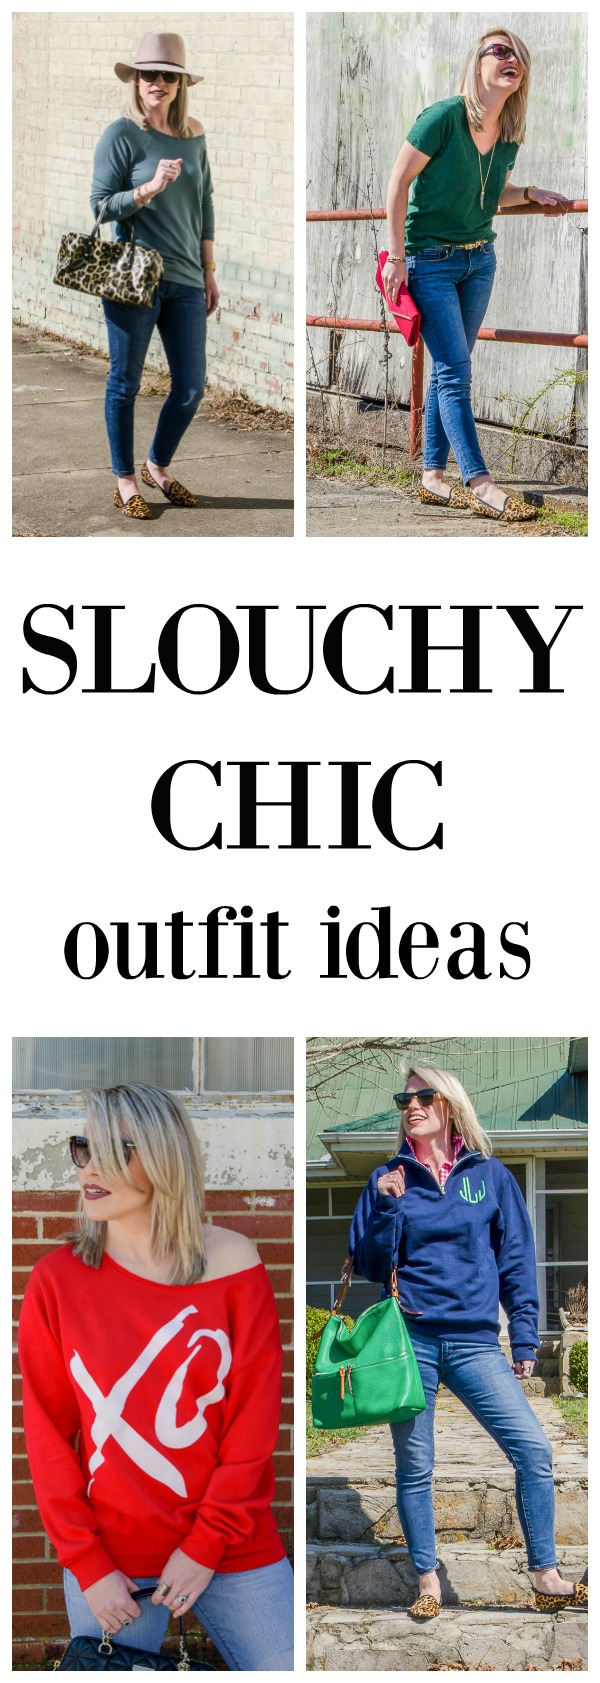 Get Slouchy Chic Outfit Ideas for when you want to look put together, but be comfortable too. Includes slouchy sweatshirt, dressy t-shirt ideas, and more.